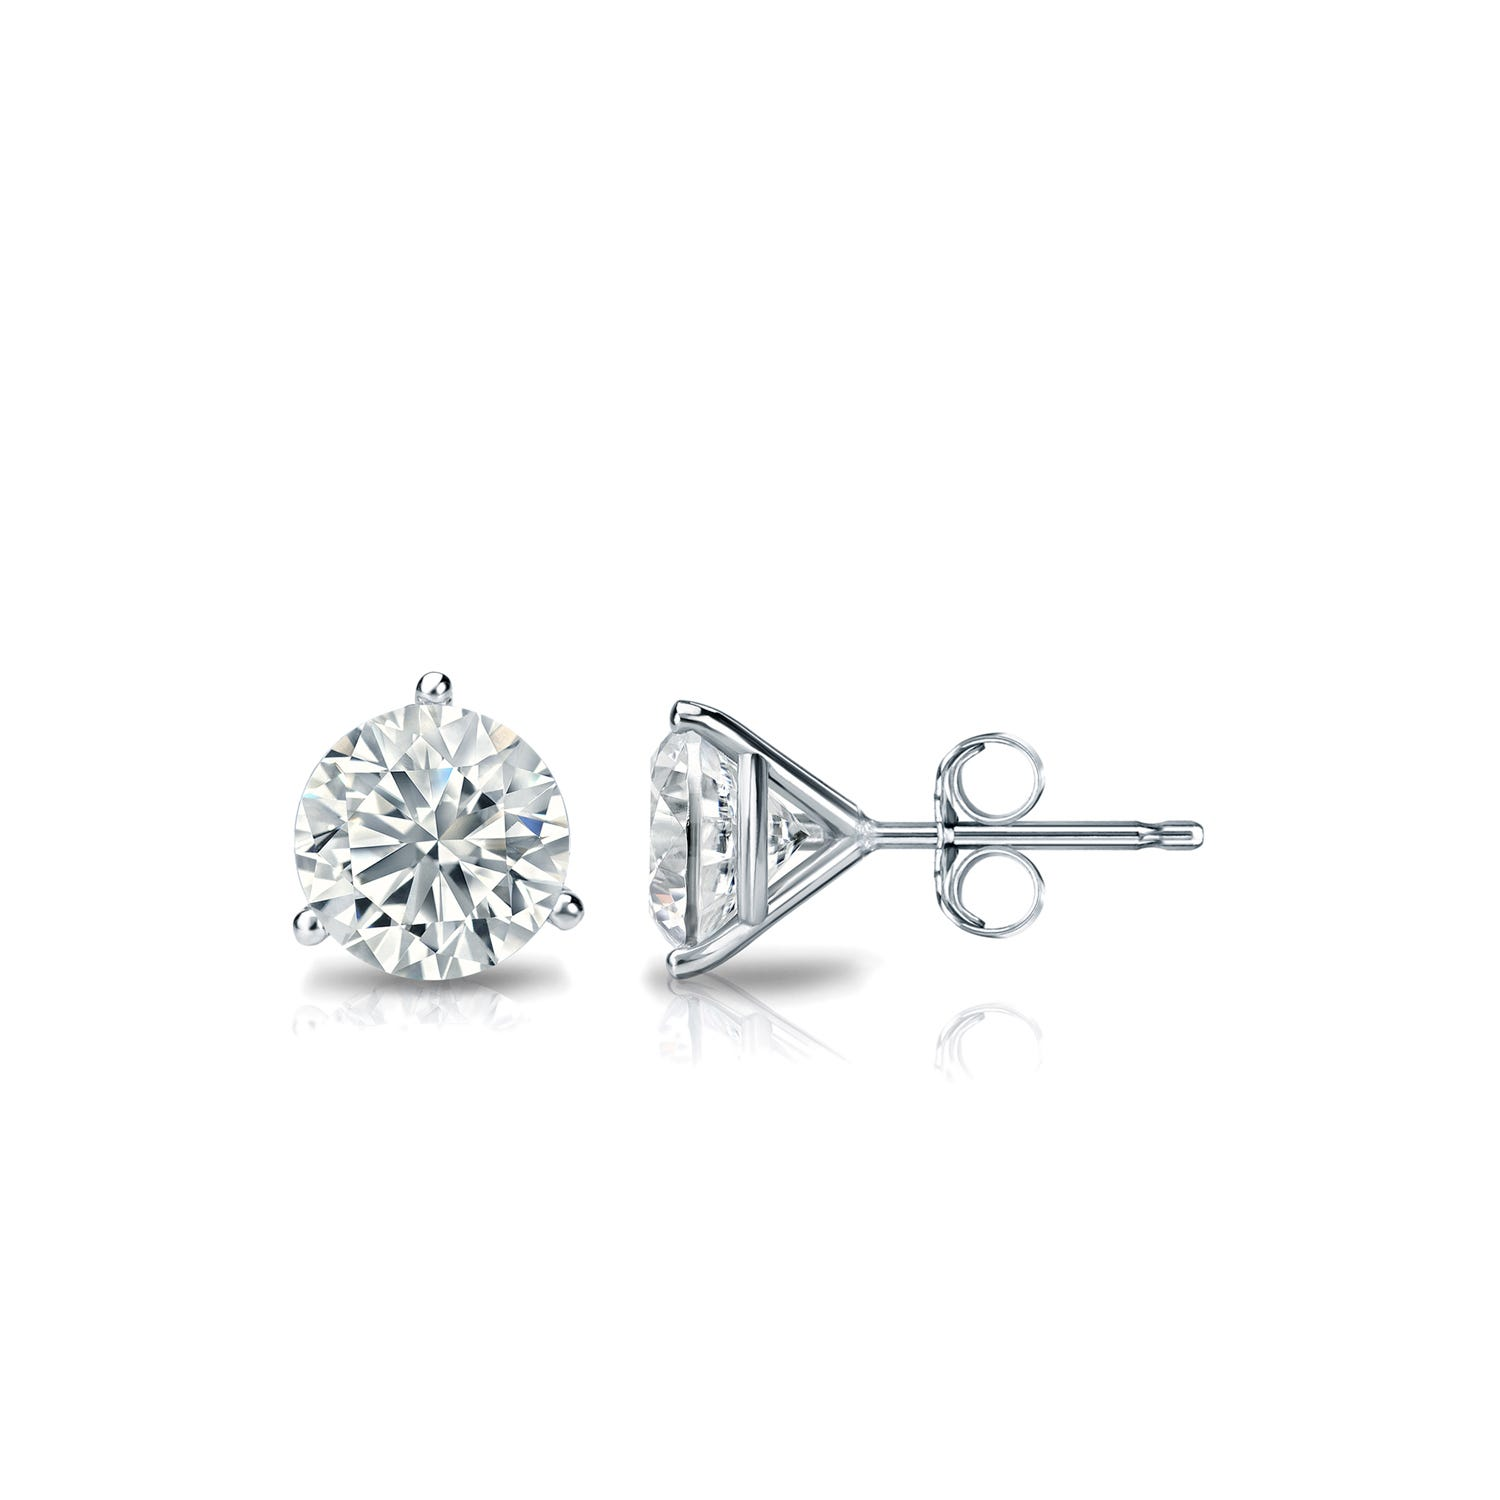 5/8 CTTW Round Diamond Solitaire Stud Earrings IJ SI1 in Platinum 3-Prong Setting